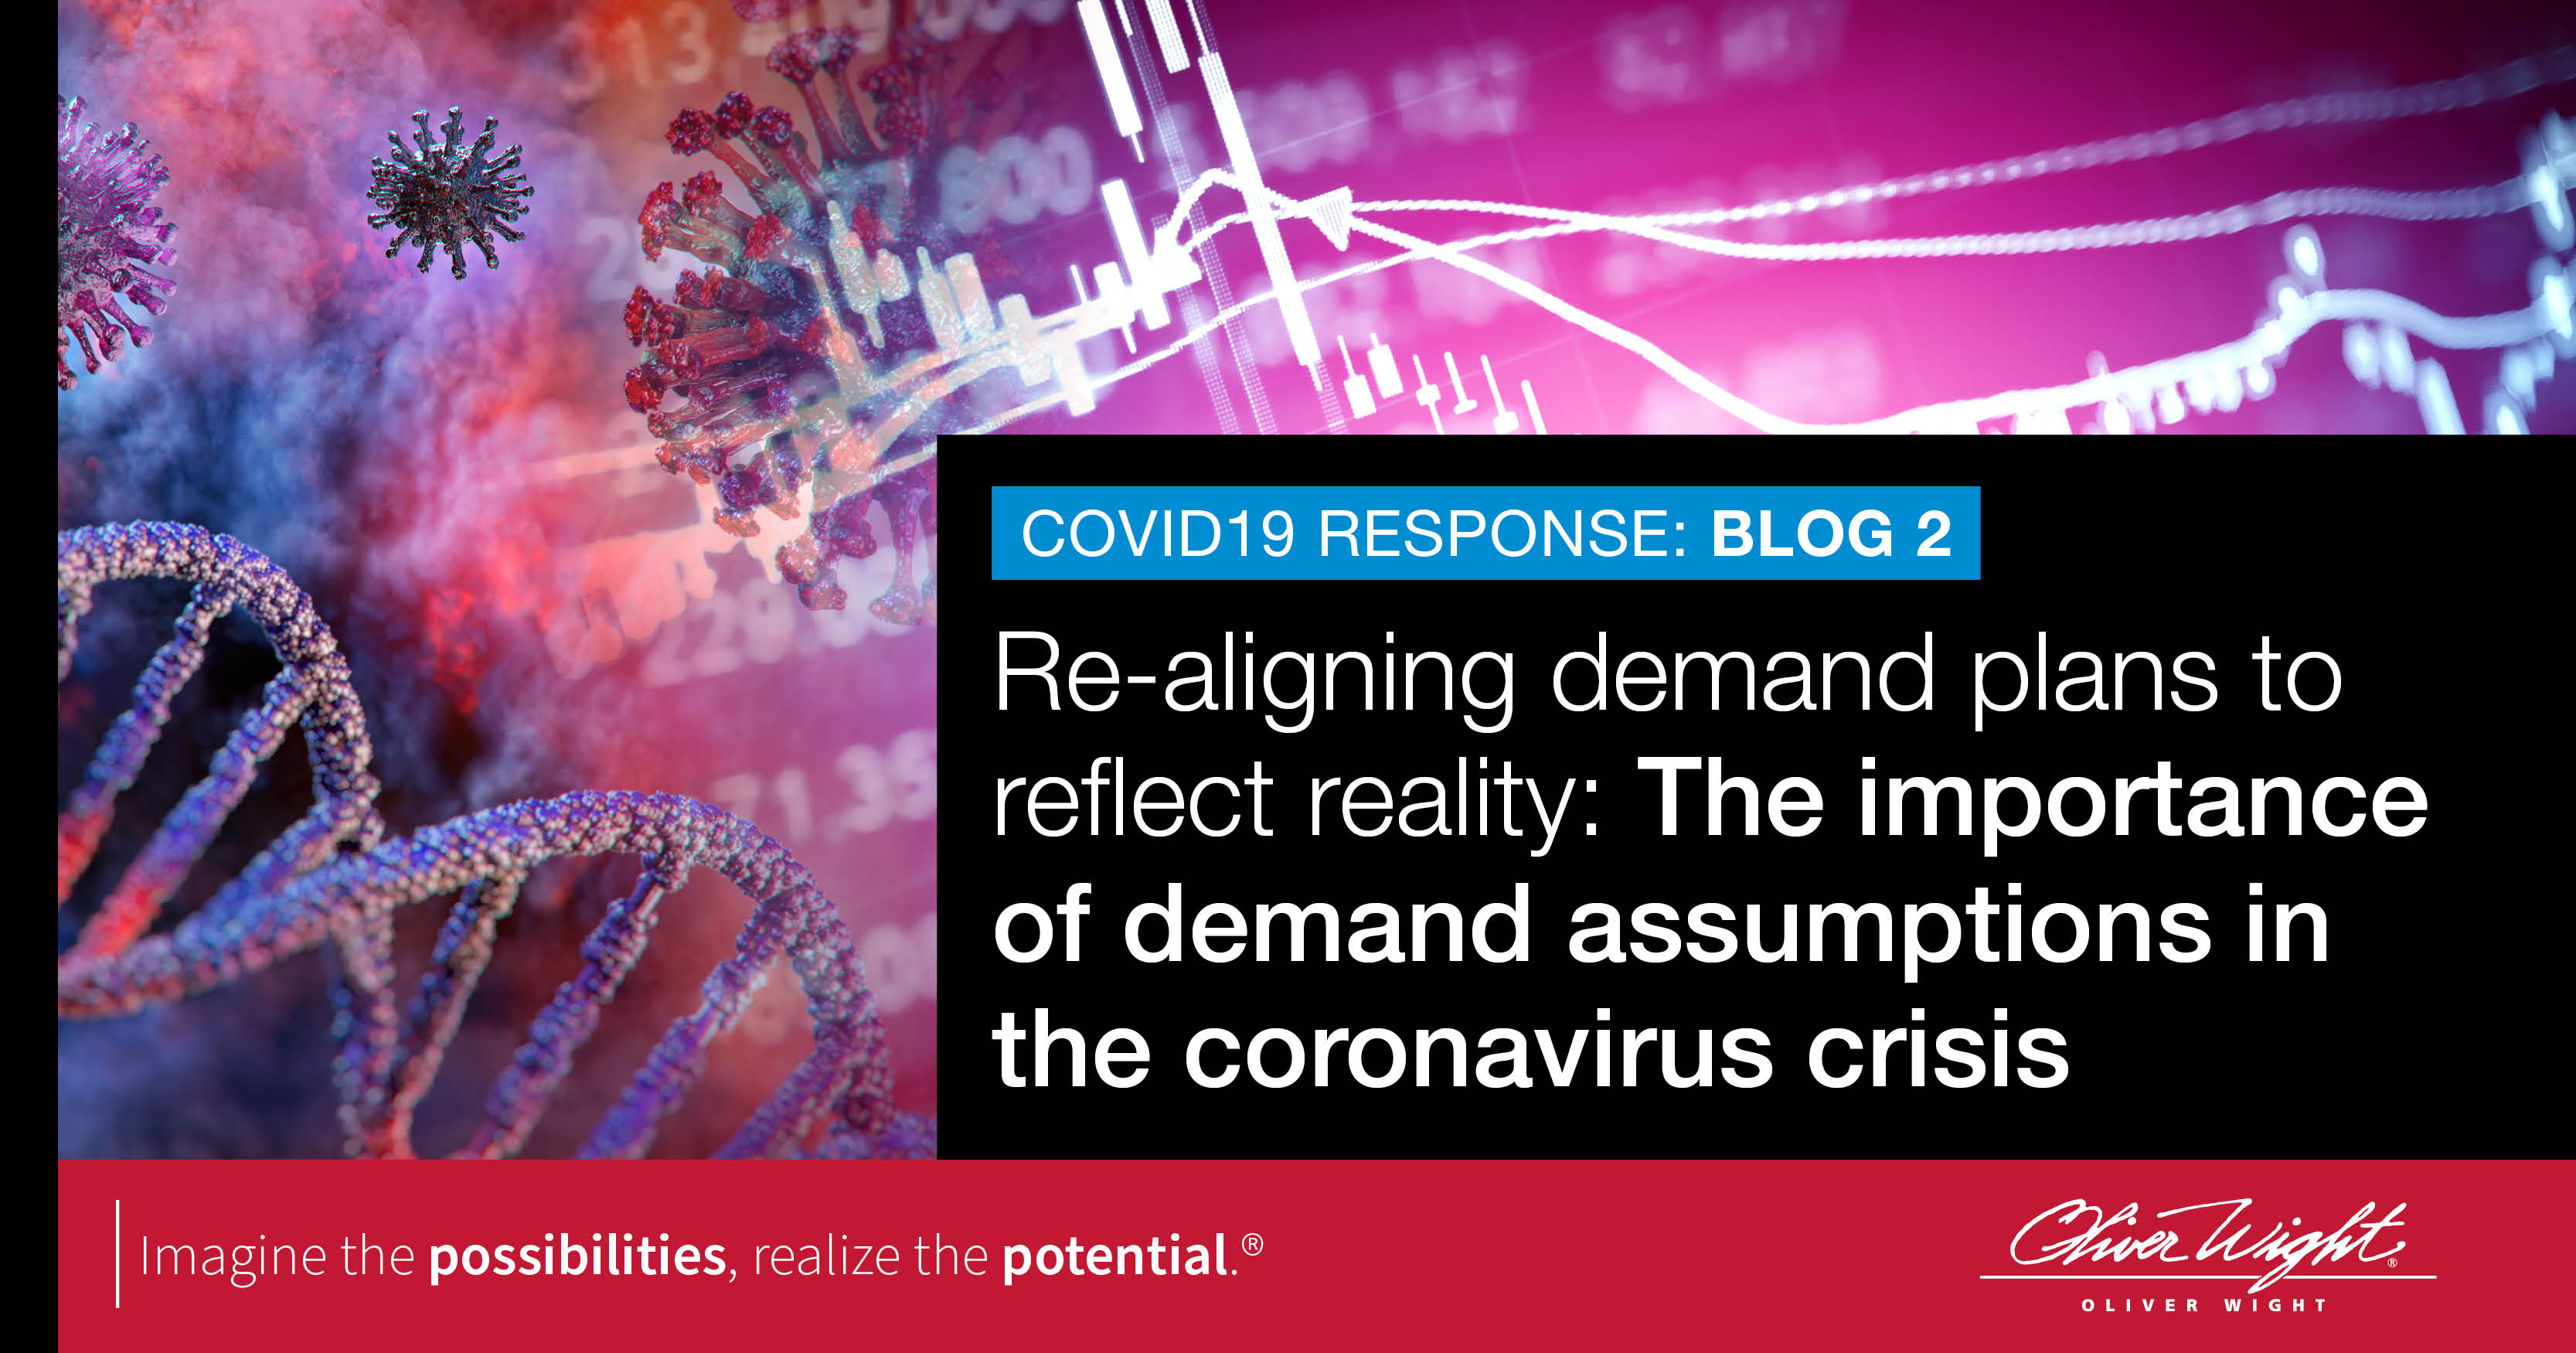 Re-aligning demand plans to reflect reality: The importance of demand assumptions in the coronavirus crisis